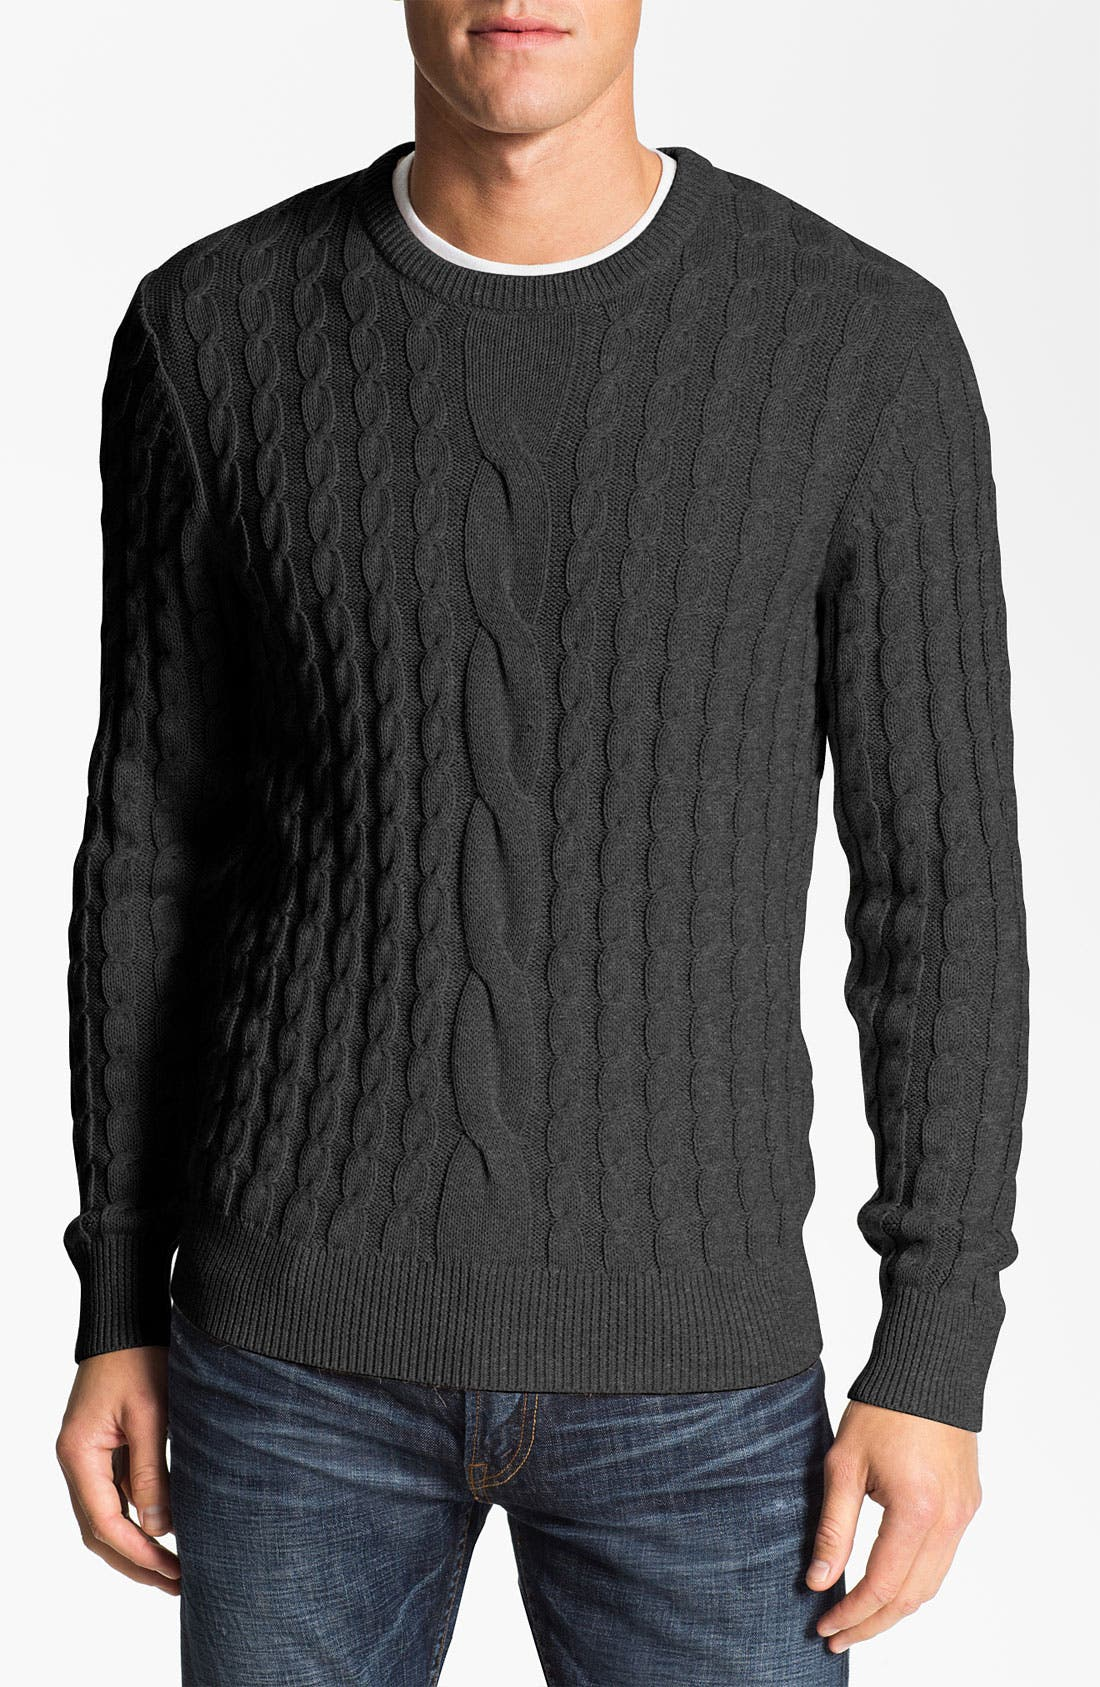 Alternate Image 1 Selected - 1901 Cabled Crewneck Sweater